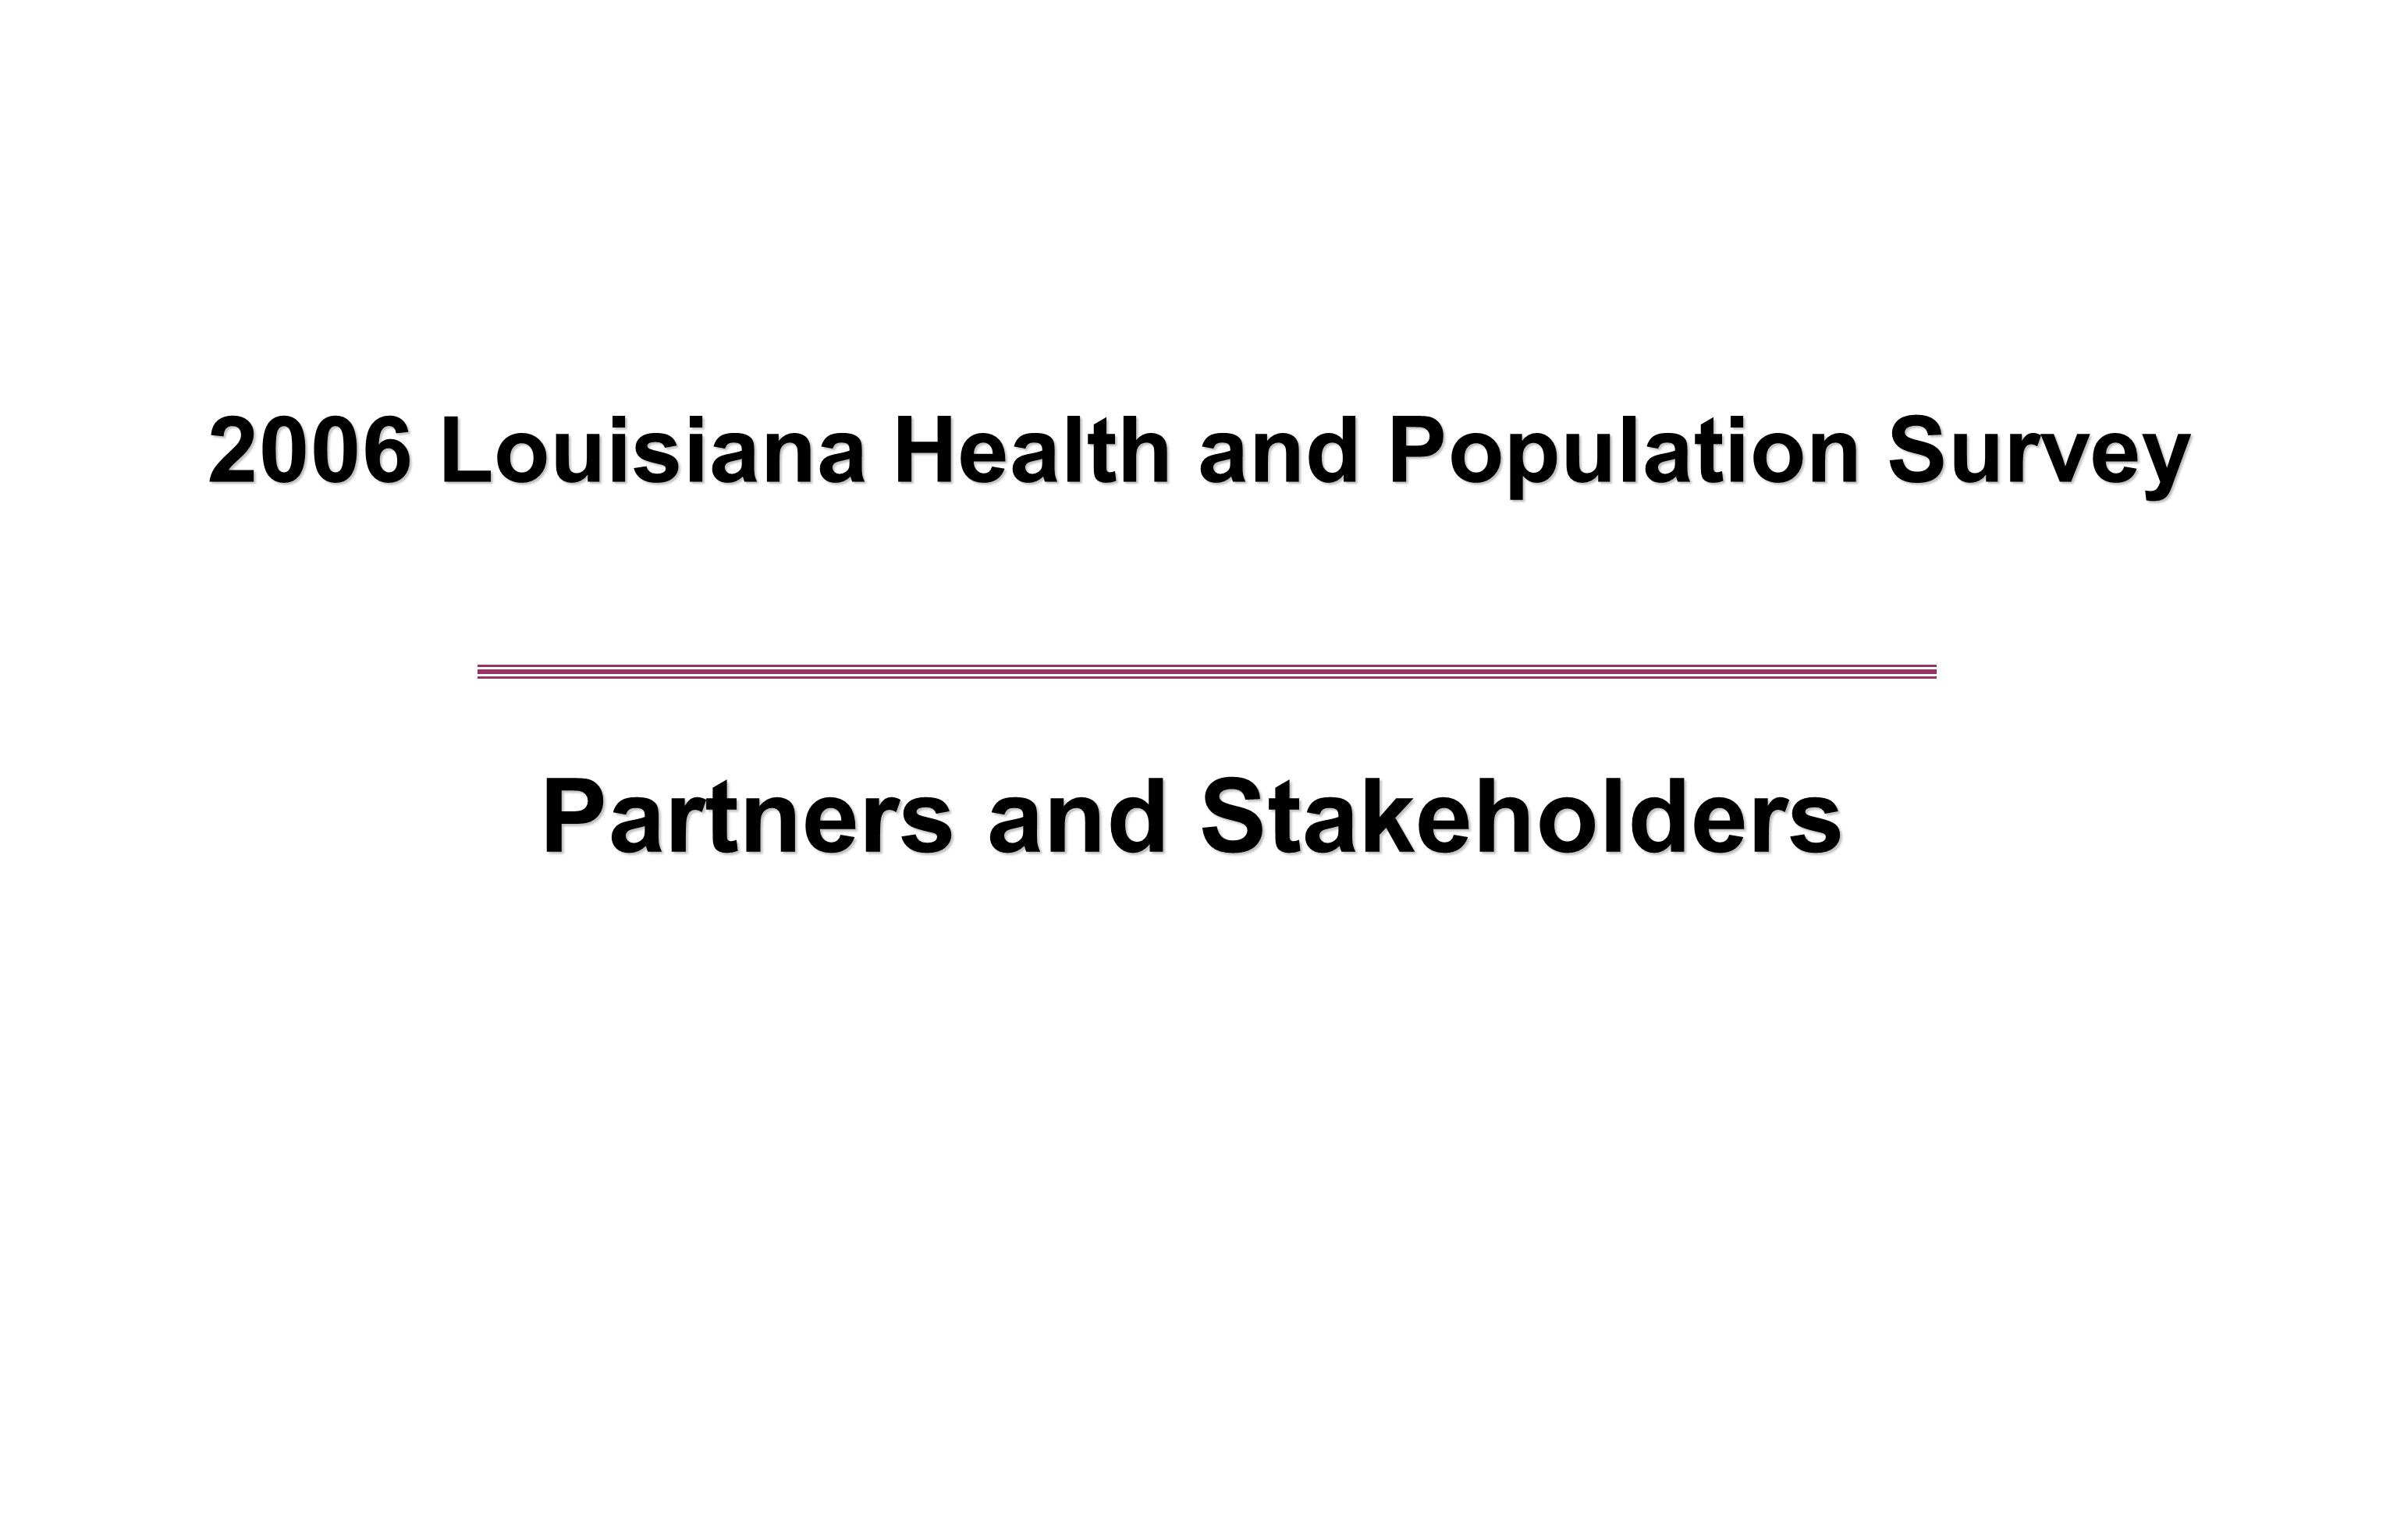 2006 Louisiana Health and Population Survey Partners and Stakeholders